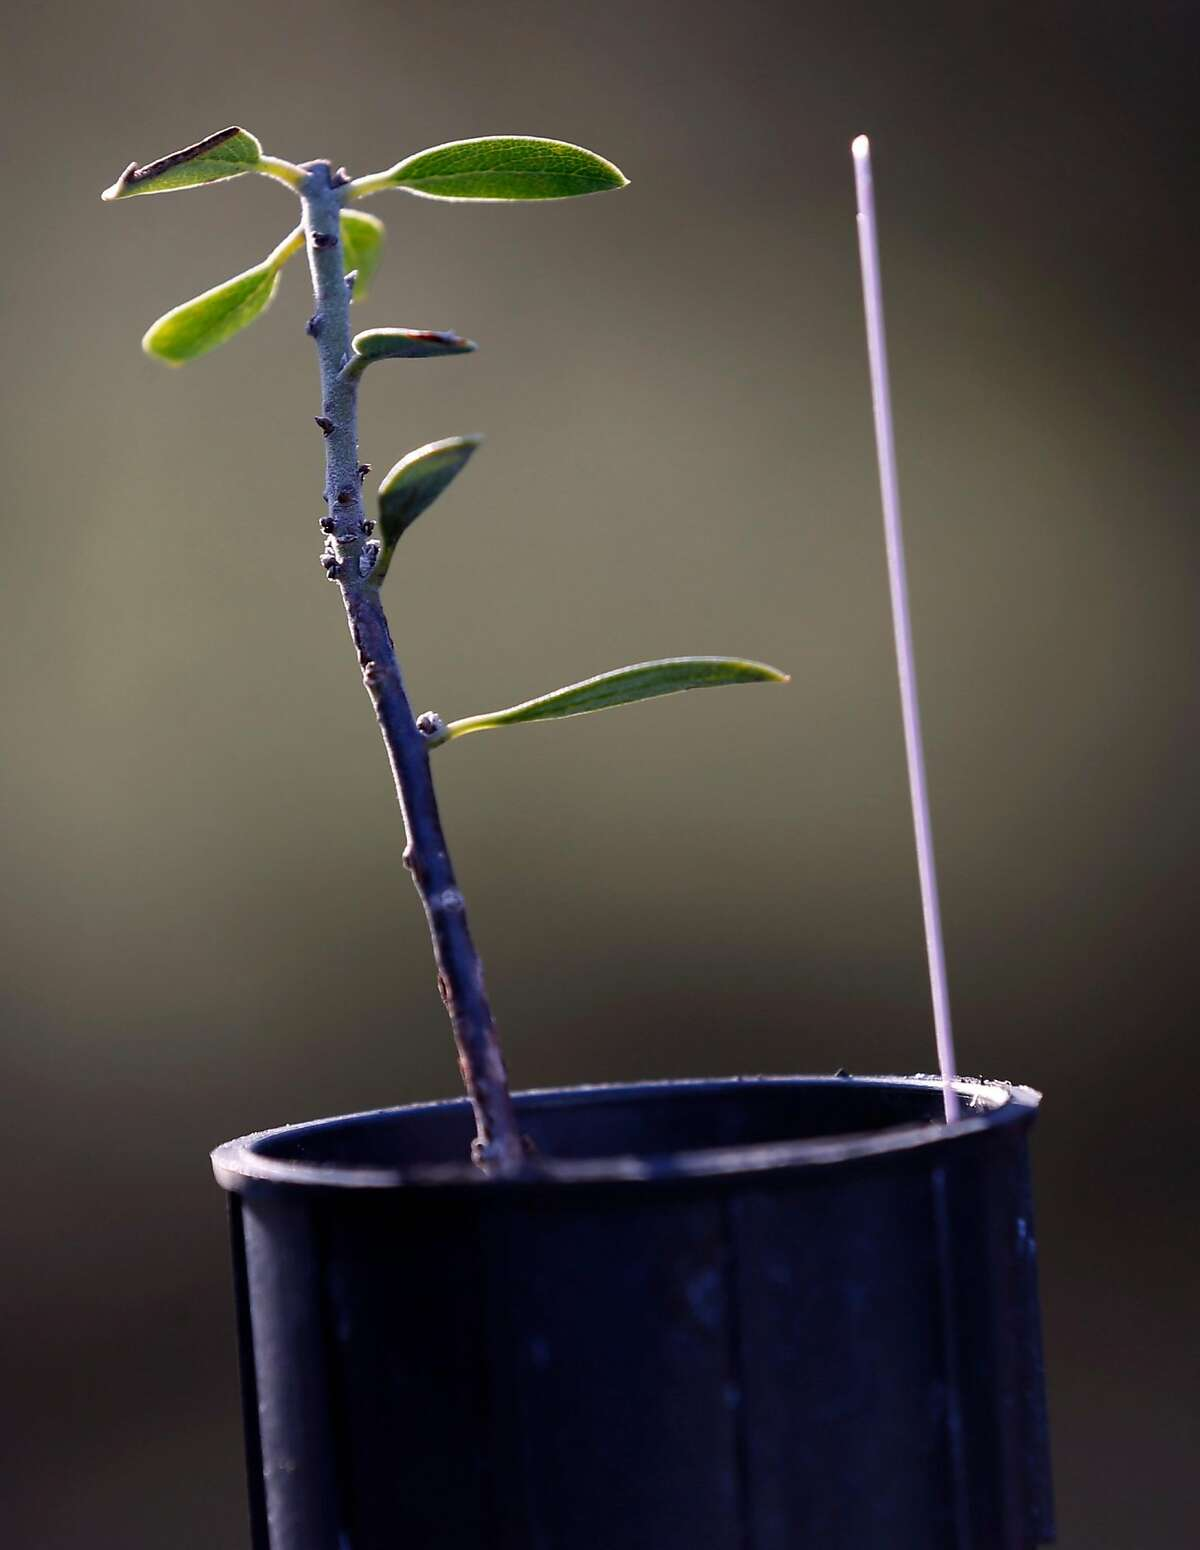 A Franciscan manazanita seedling is prepped for planting at the Presidio in San Francisco, Calif. on Wednesday, Feb. 21, 2018. Park Service biologists are reintroducing the endangered Franciscan manzanita back to its natural habitat in the Presidio.